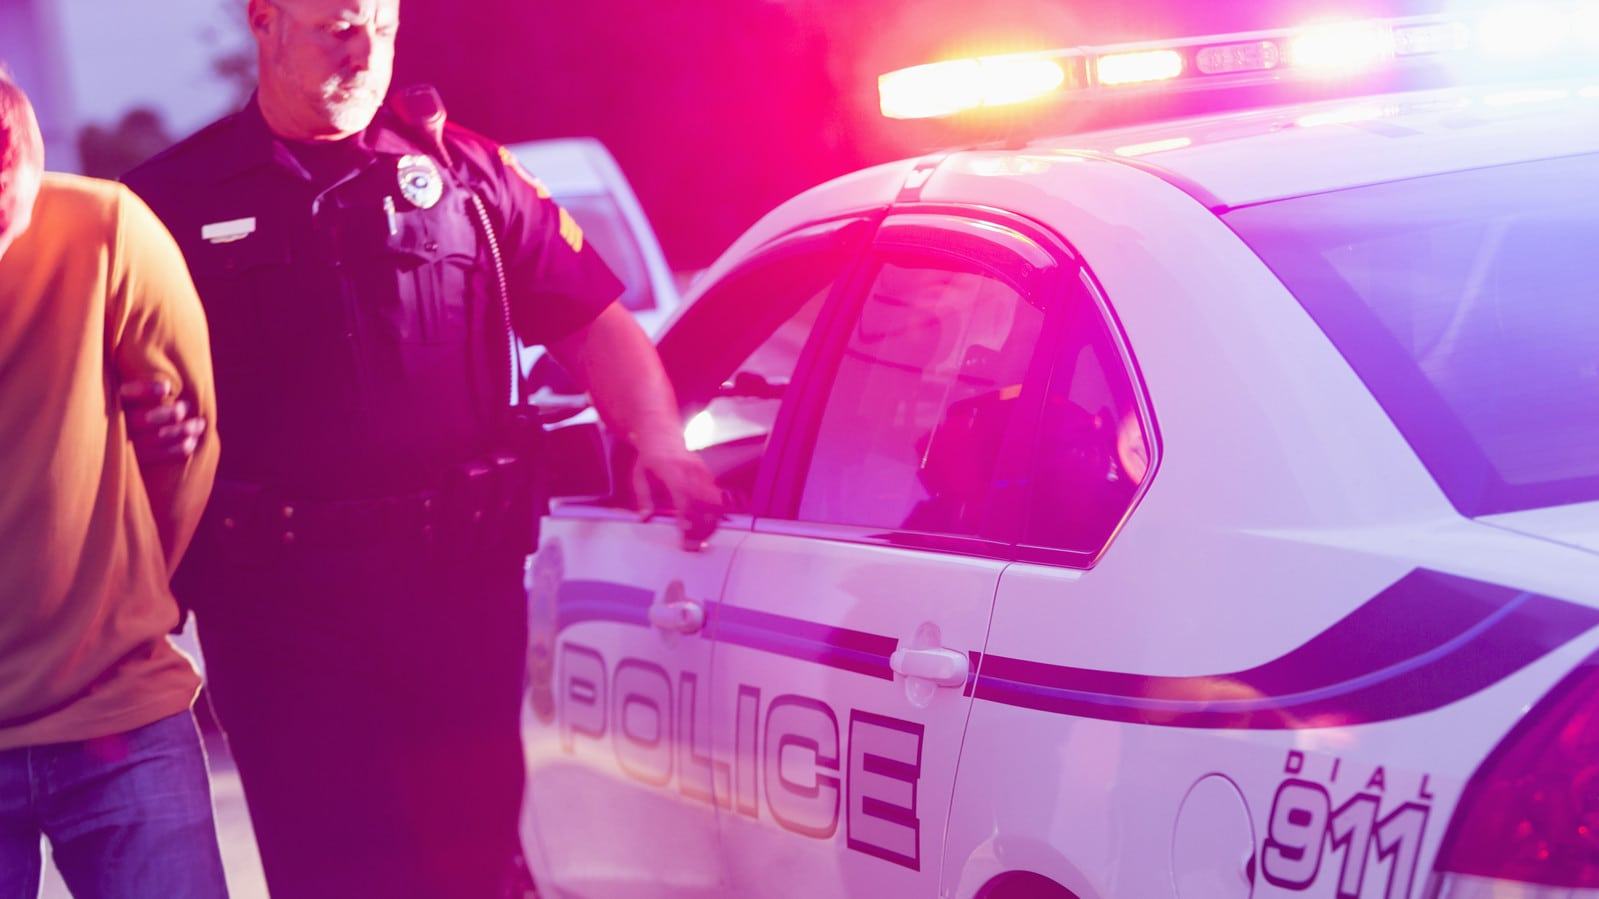 Police officer Arresting A Drunk Driver Stock Photo